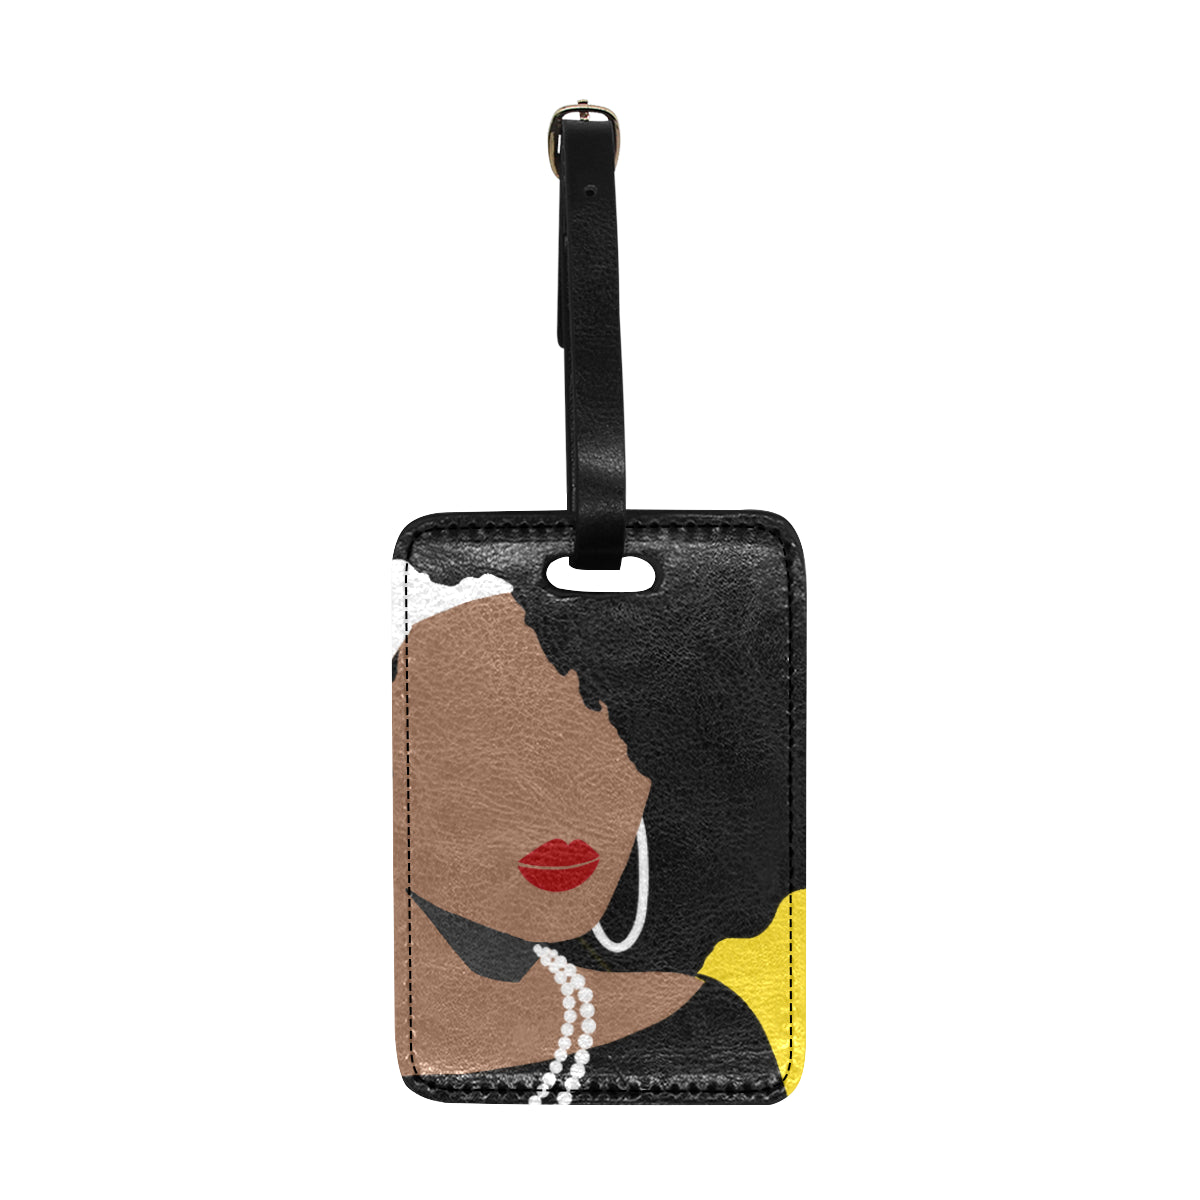 Bougie Kelley 1873 Luggage Tag